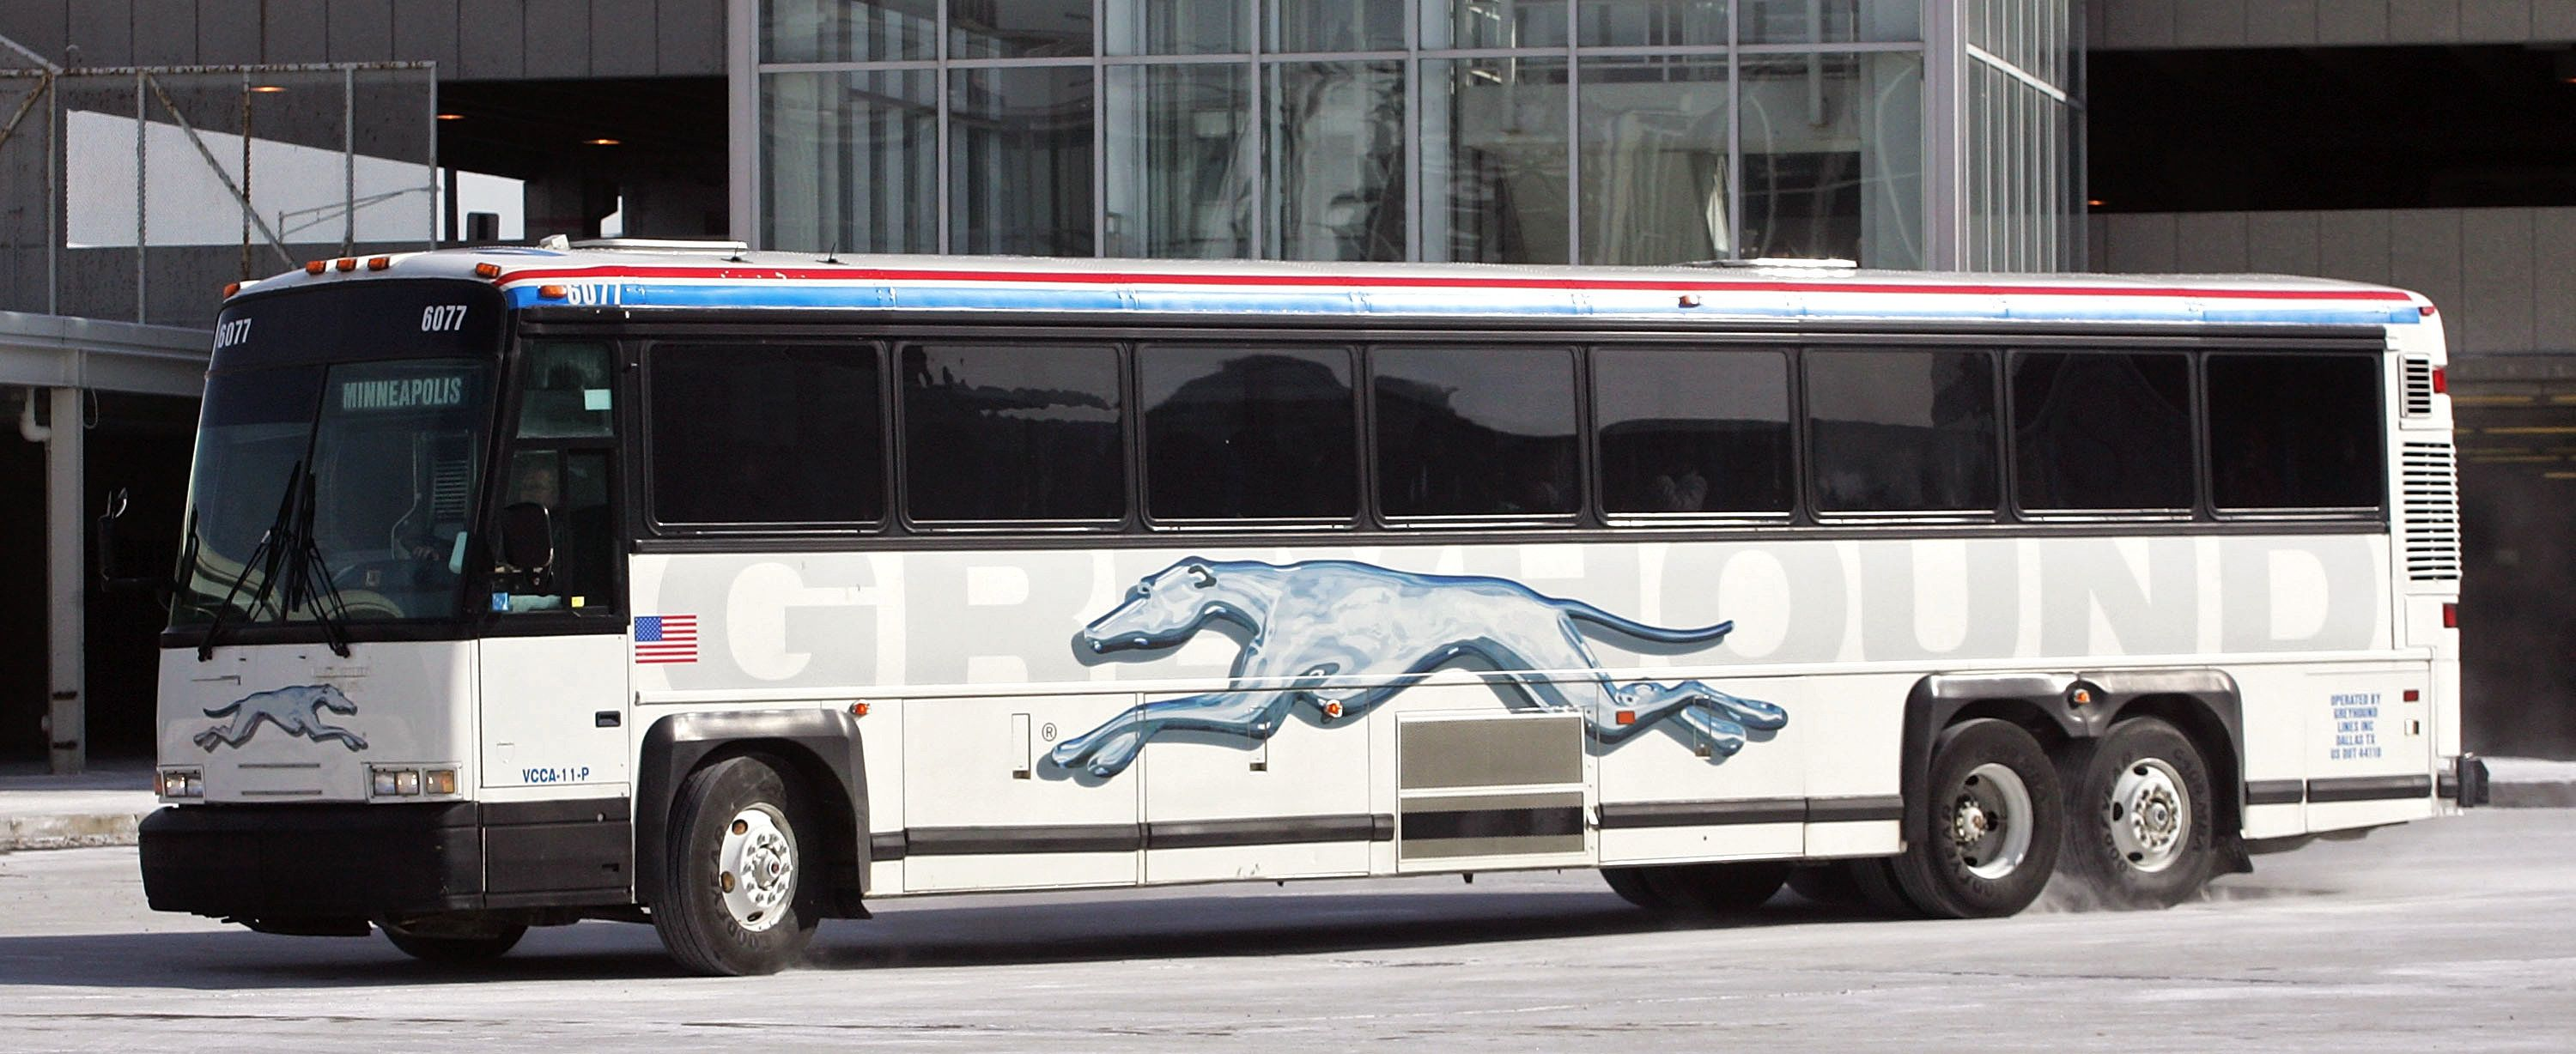 UNITED STATES - FEBRUARY 09:  A Greyhound bus enroute to Minneapolis in Chicago, Illinois, Friday, Feb. 9, 2007. Britain's FirstGroup Plc agreed to buy Laidlaw International Inc., owner of the largest U.S. school-bus company and the Greyhound bus service, for $3.6 billion to triple revenue in North America.  (Photo by Tim Boyle/Bloomberg via Getty Images)